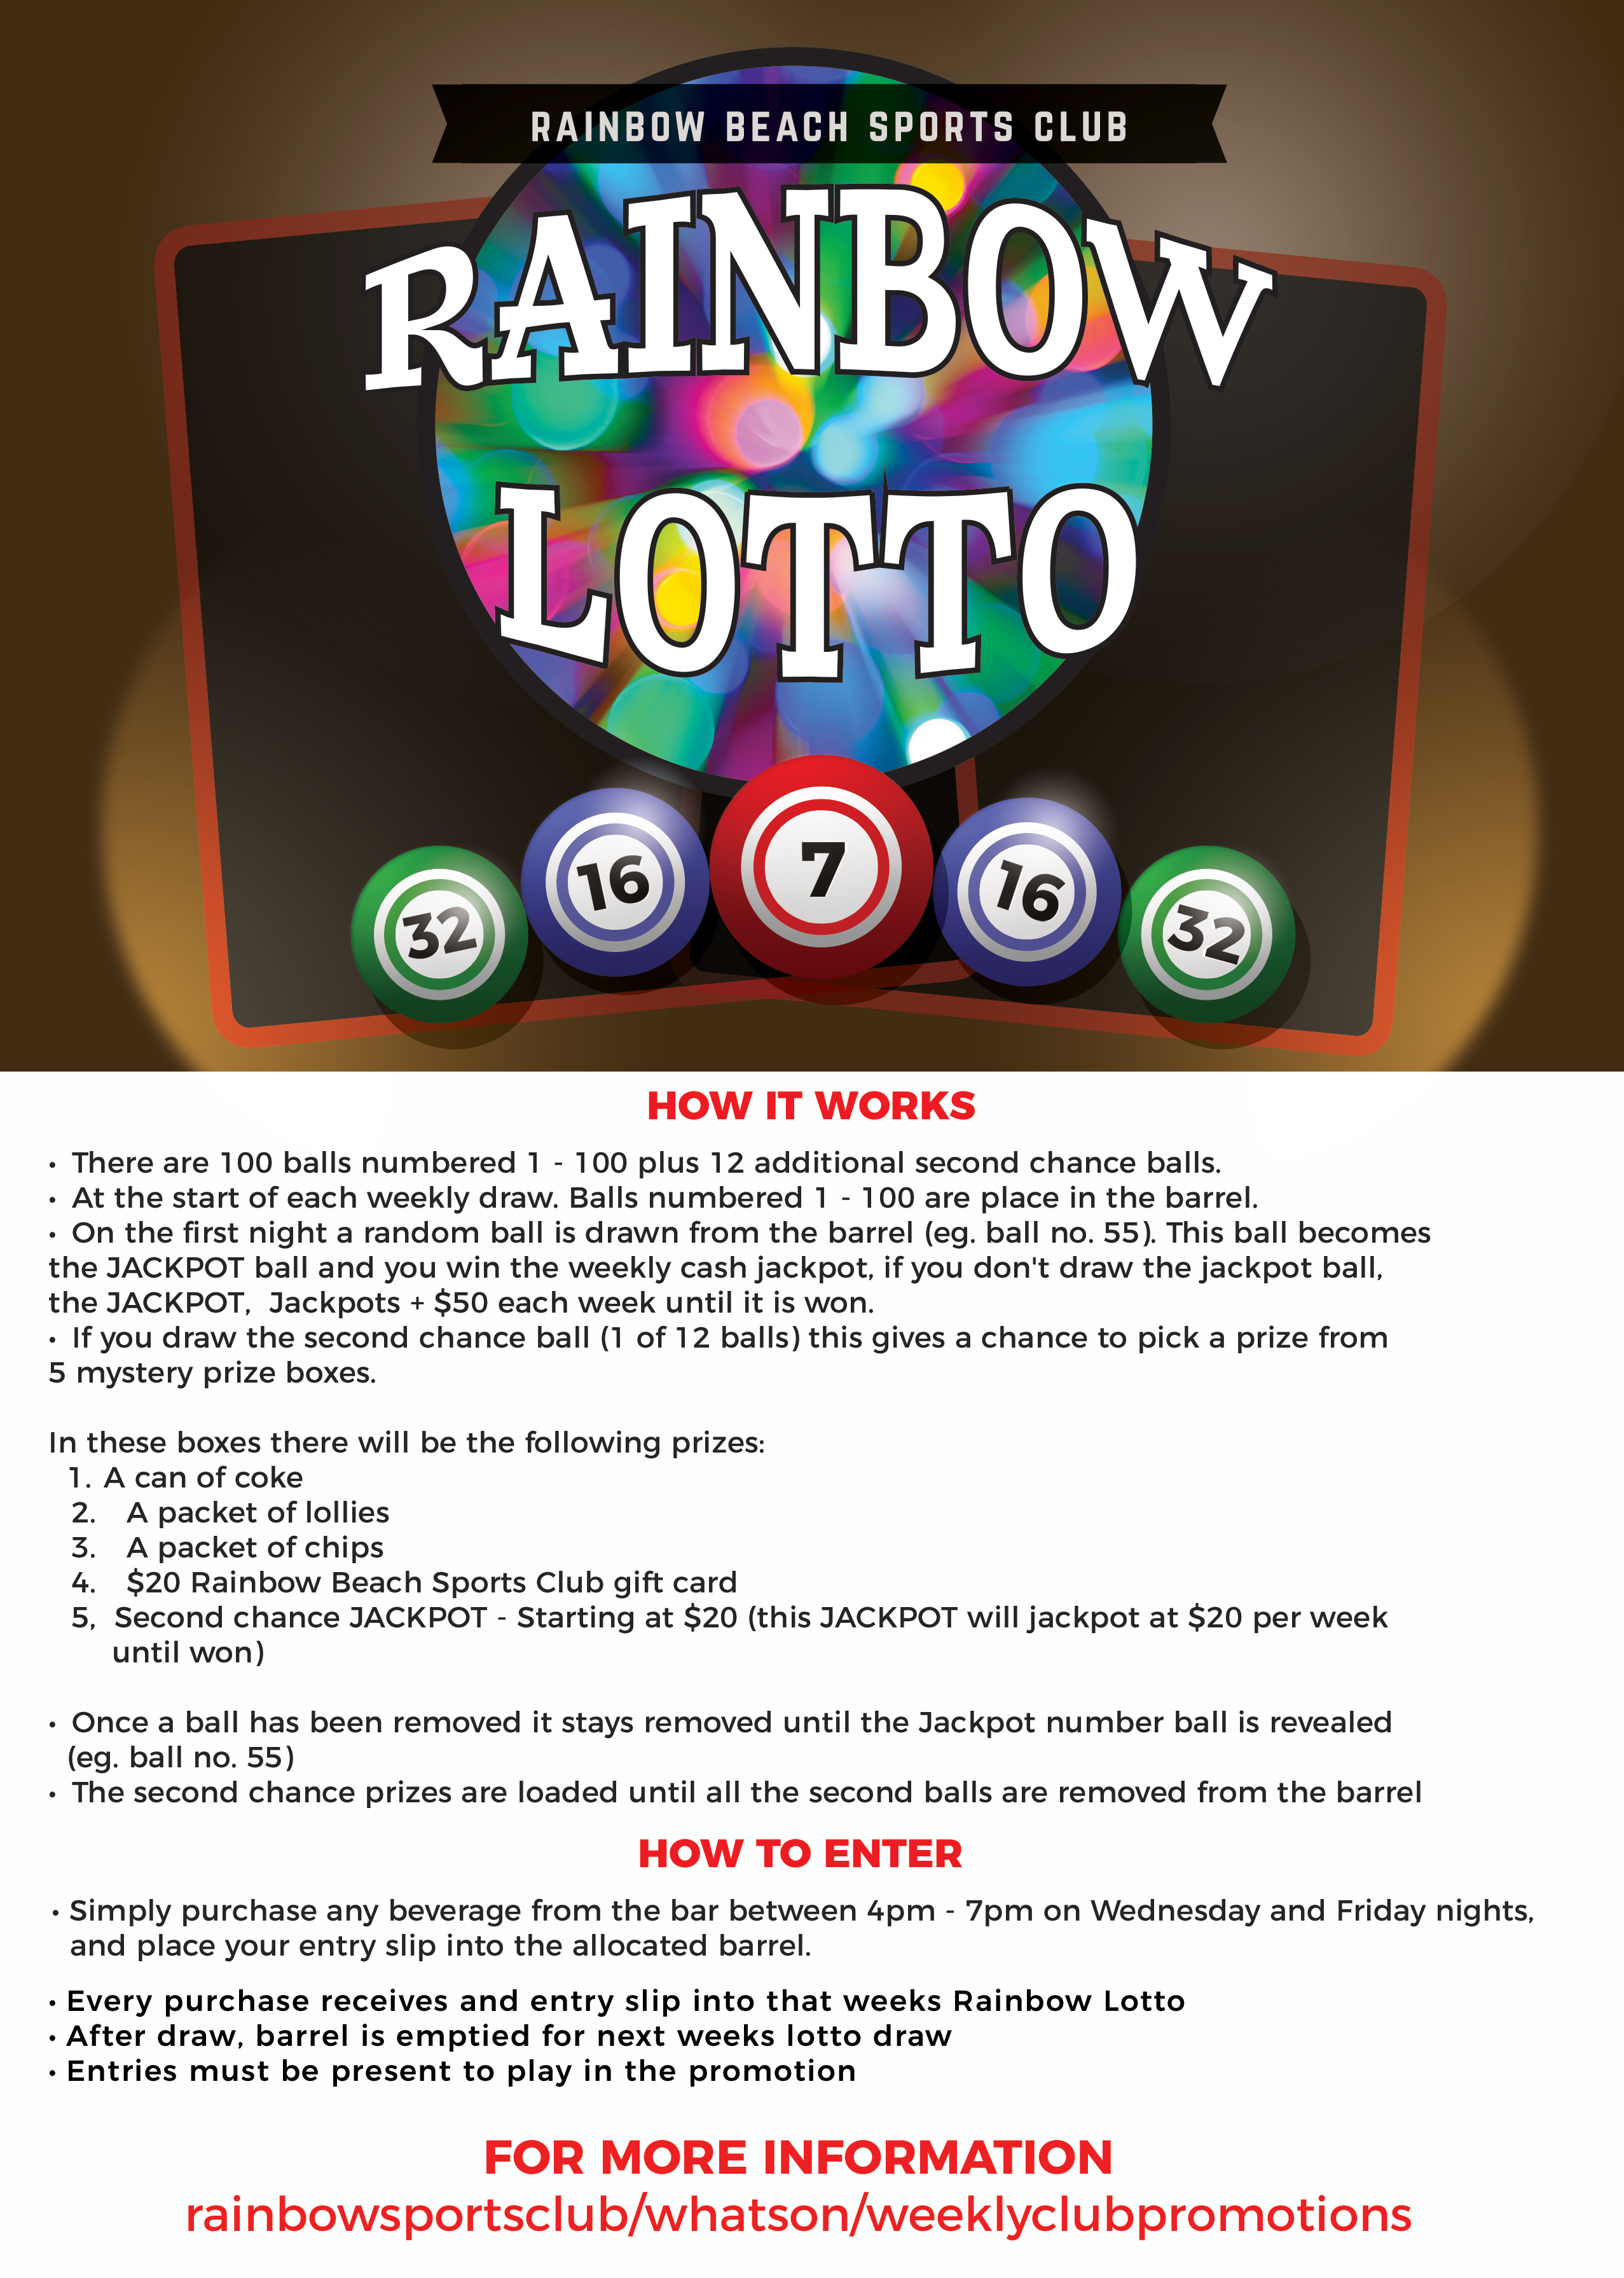 RBSC_Rainbow Lotto_How to play